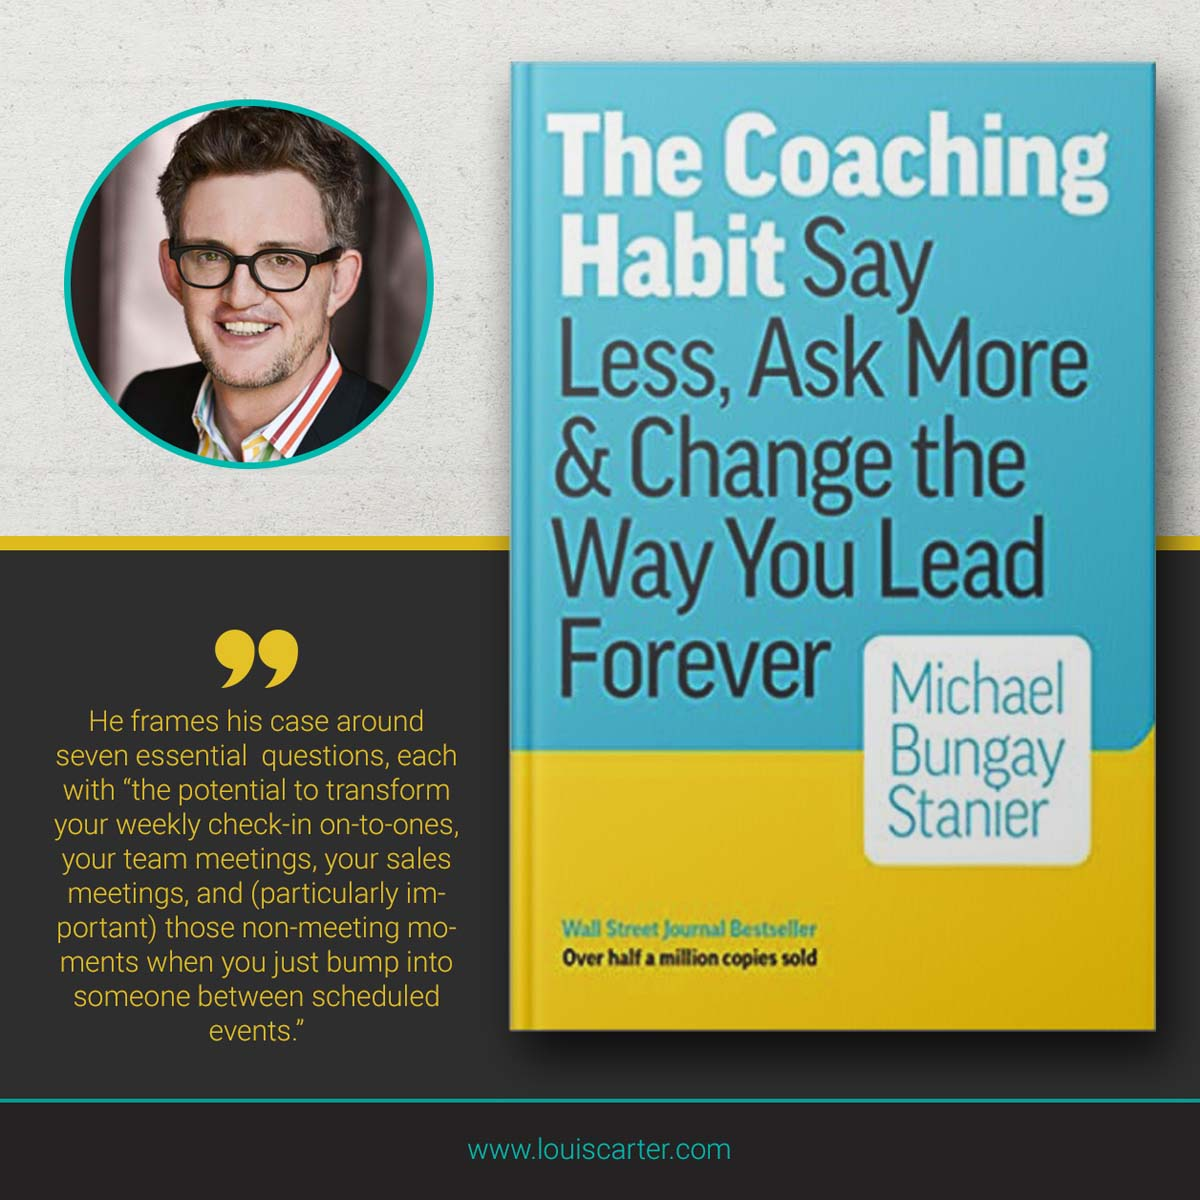 Image of The Coaching Habit by Michael Bungay Stanier leadership books.